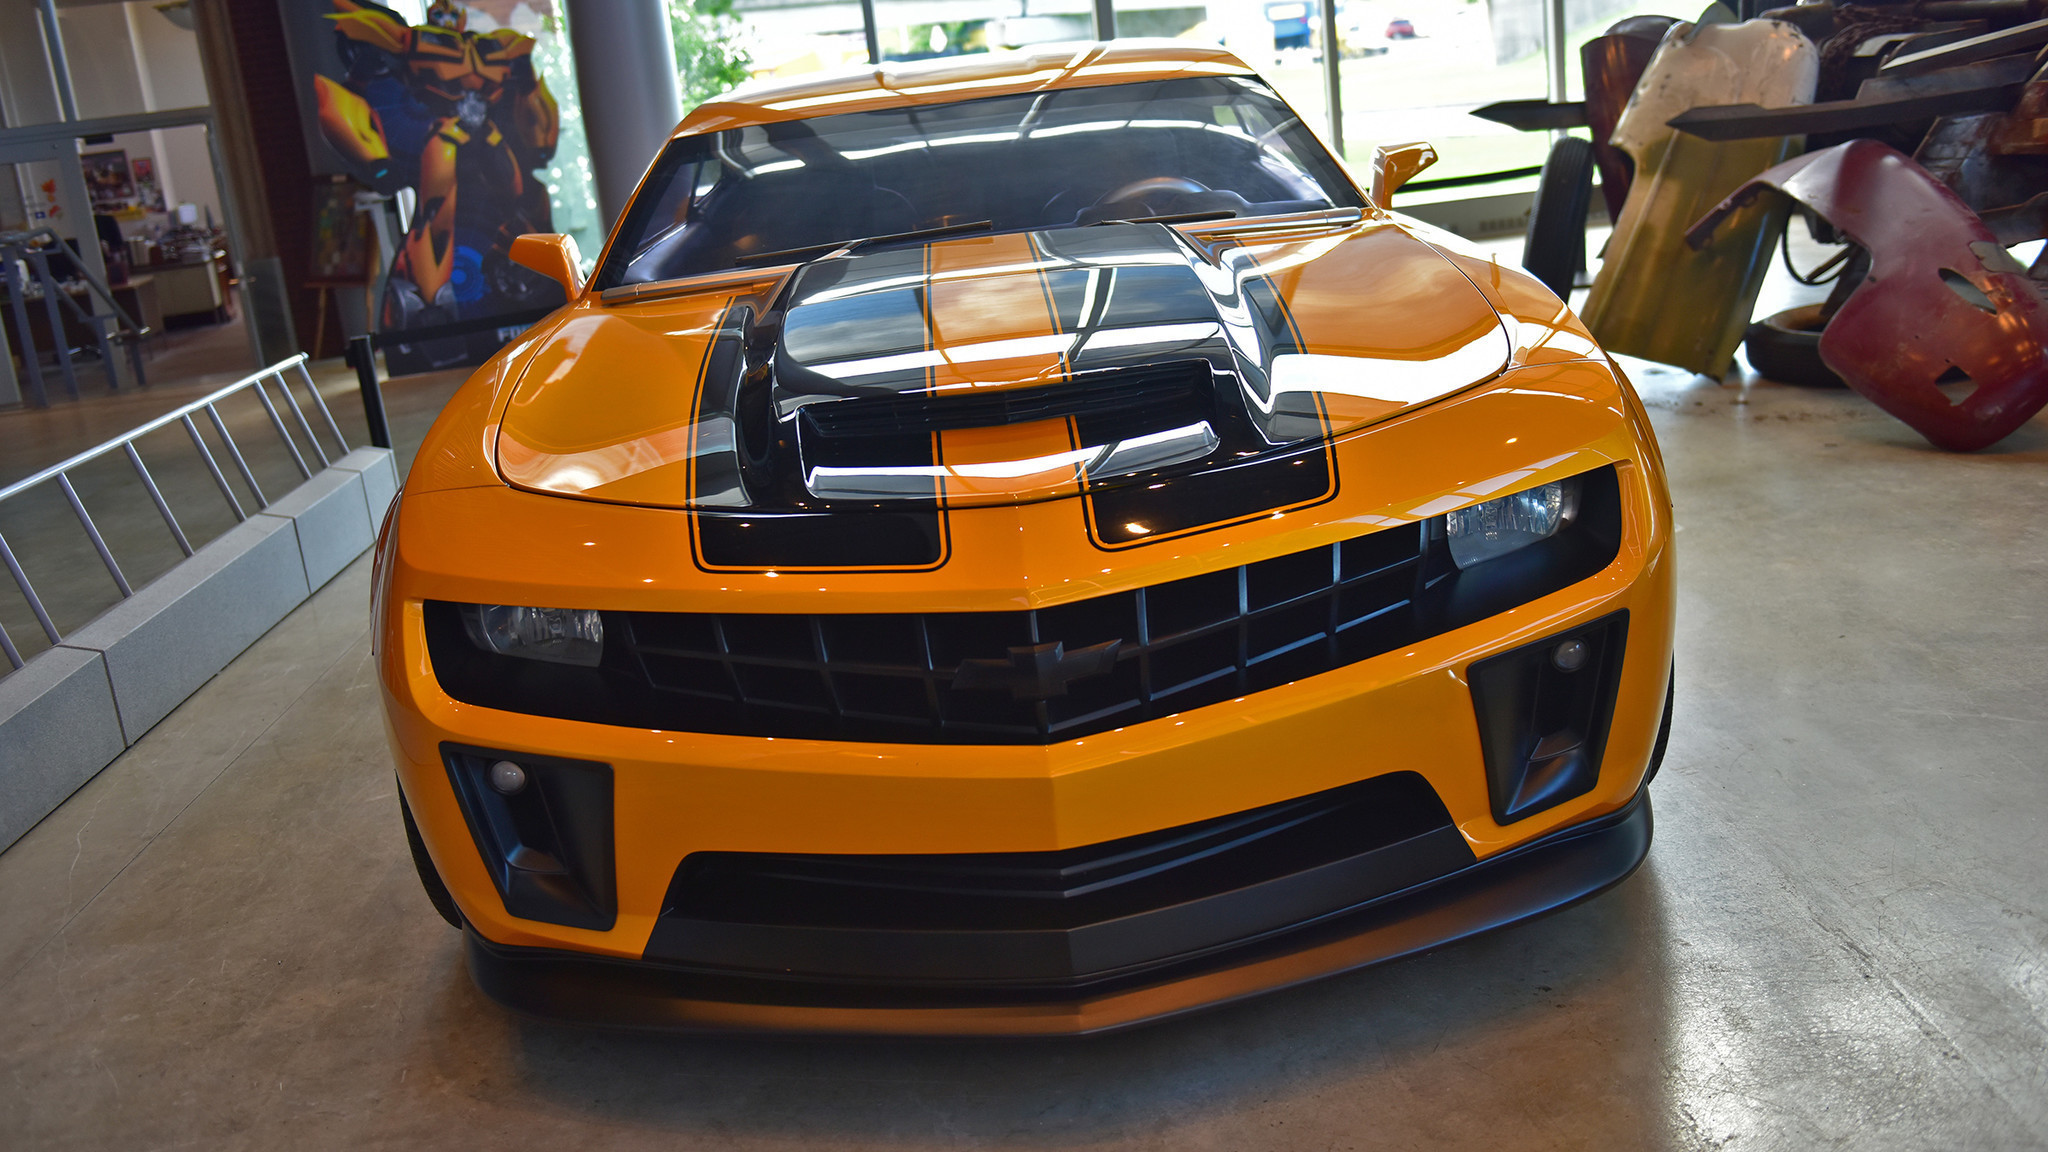 Transformers Cars: Allentown Museum Boasts Largest-ever 'Transformers' Car